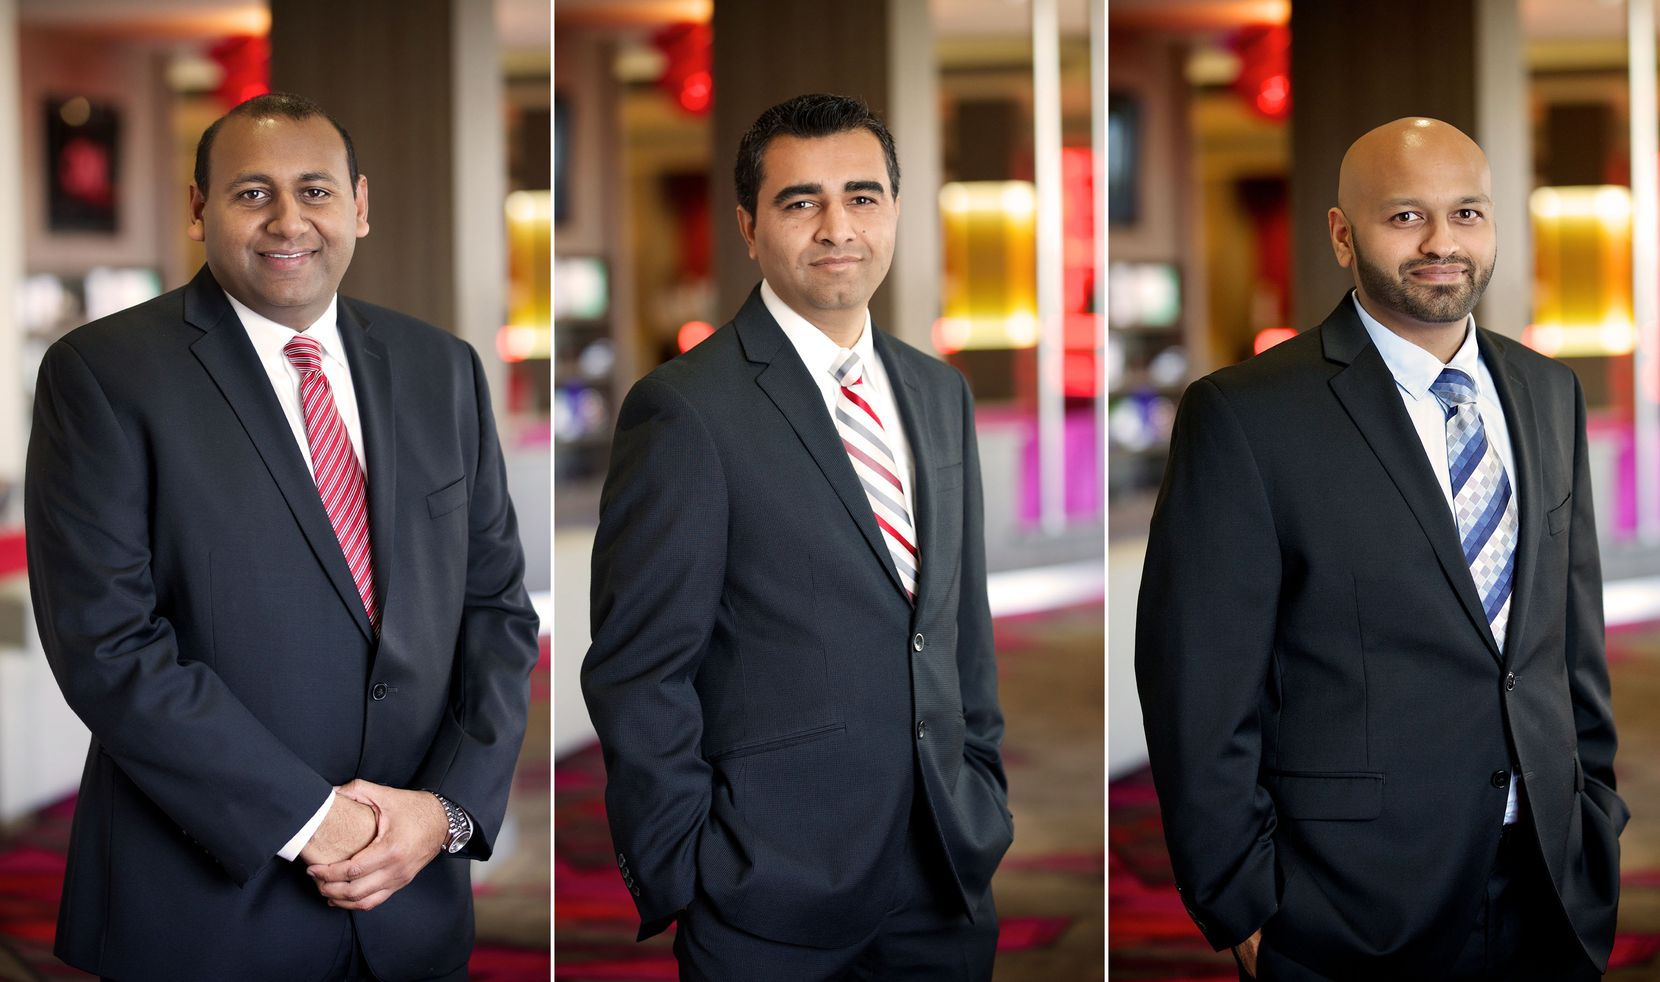 From left: Mehul Patel, Chirag Patel and Mital Patel